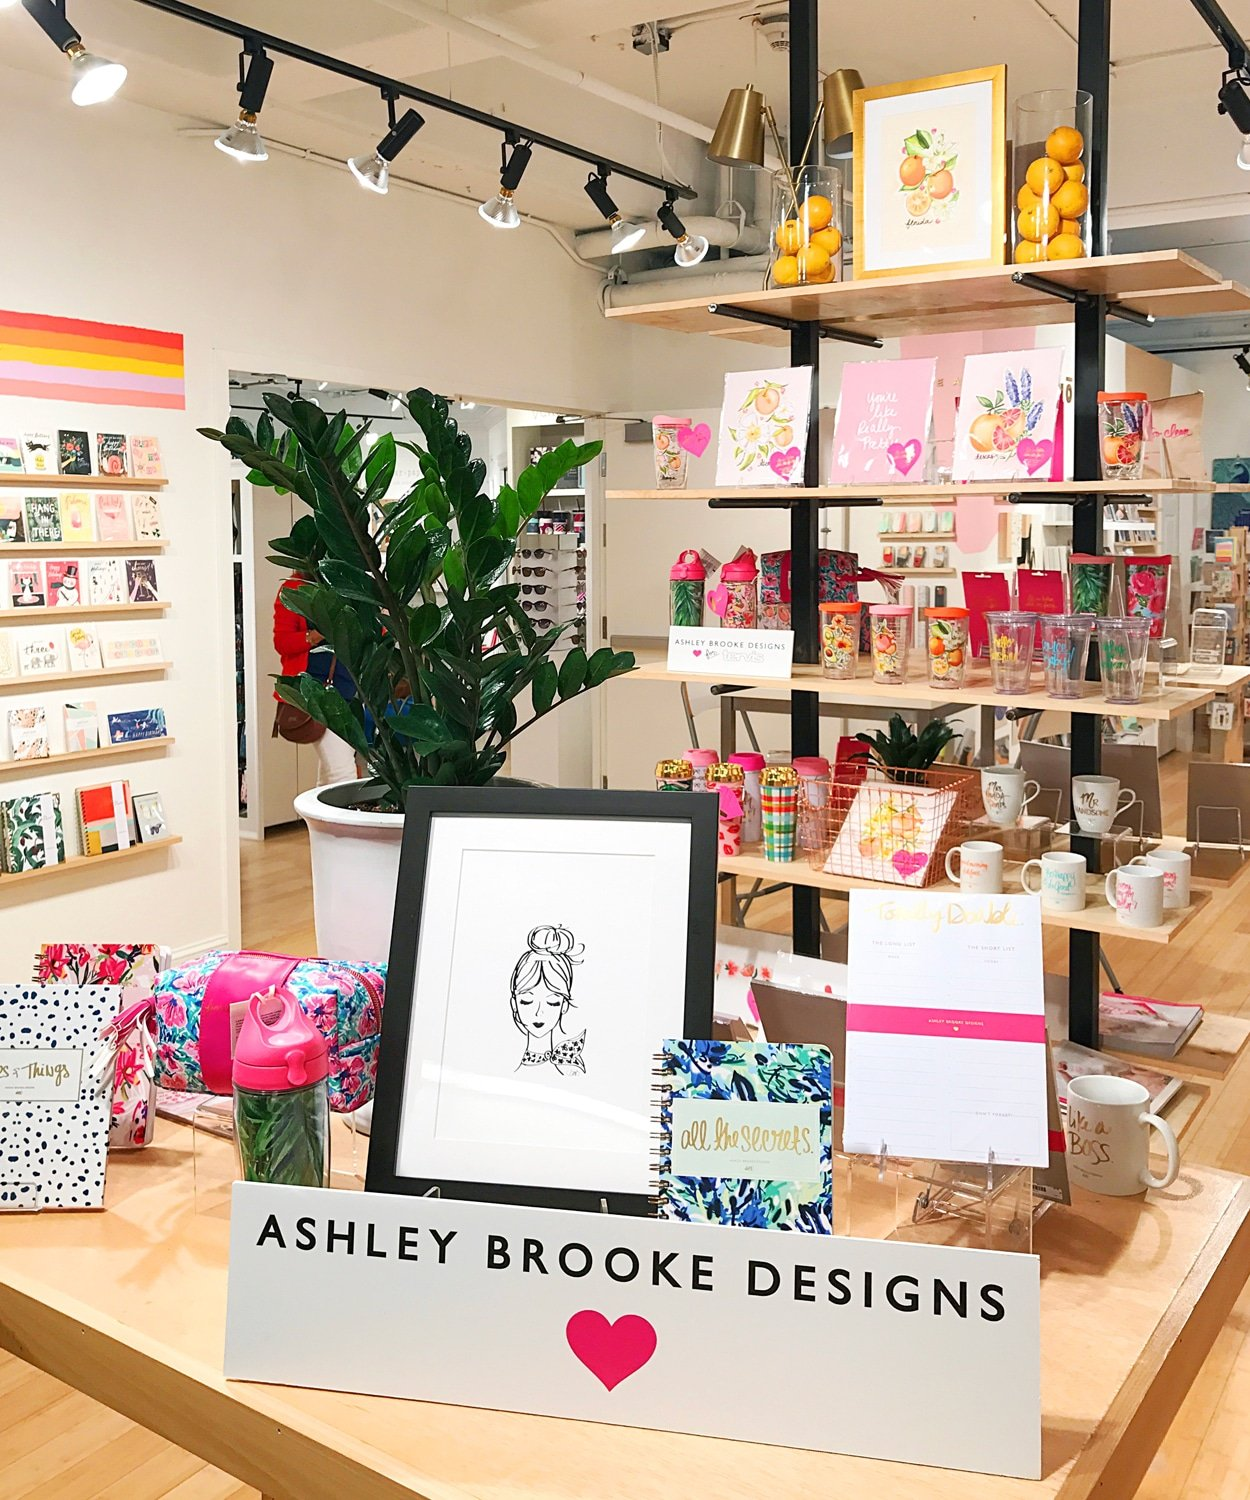 Ashley Brooke Designs debuts their new collection in Atlanta at AmericasMart!   www.ashleybrookedesigns.com